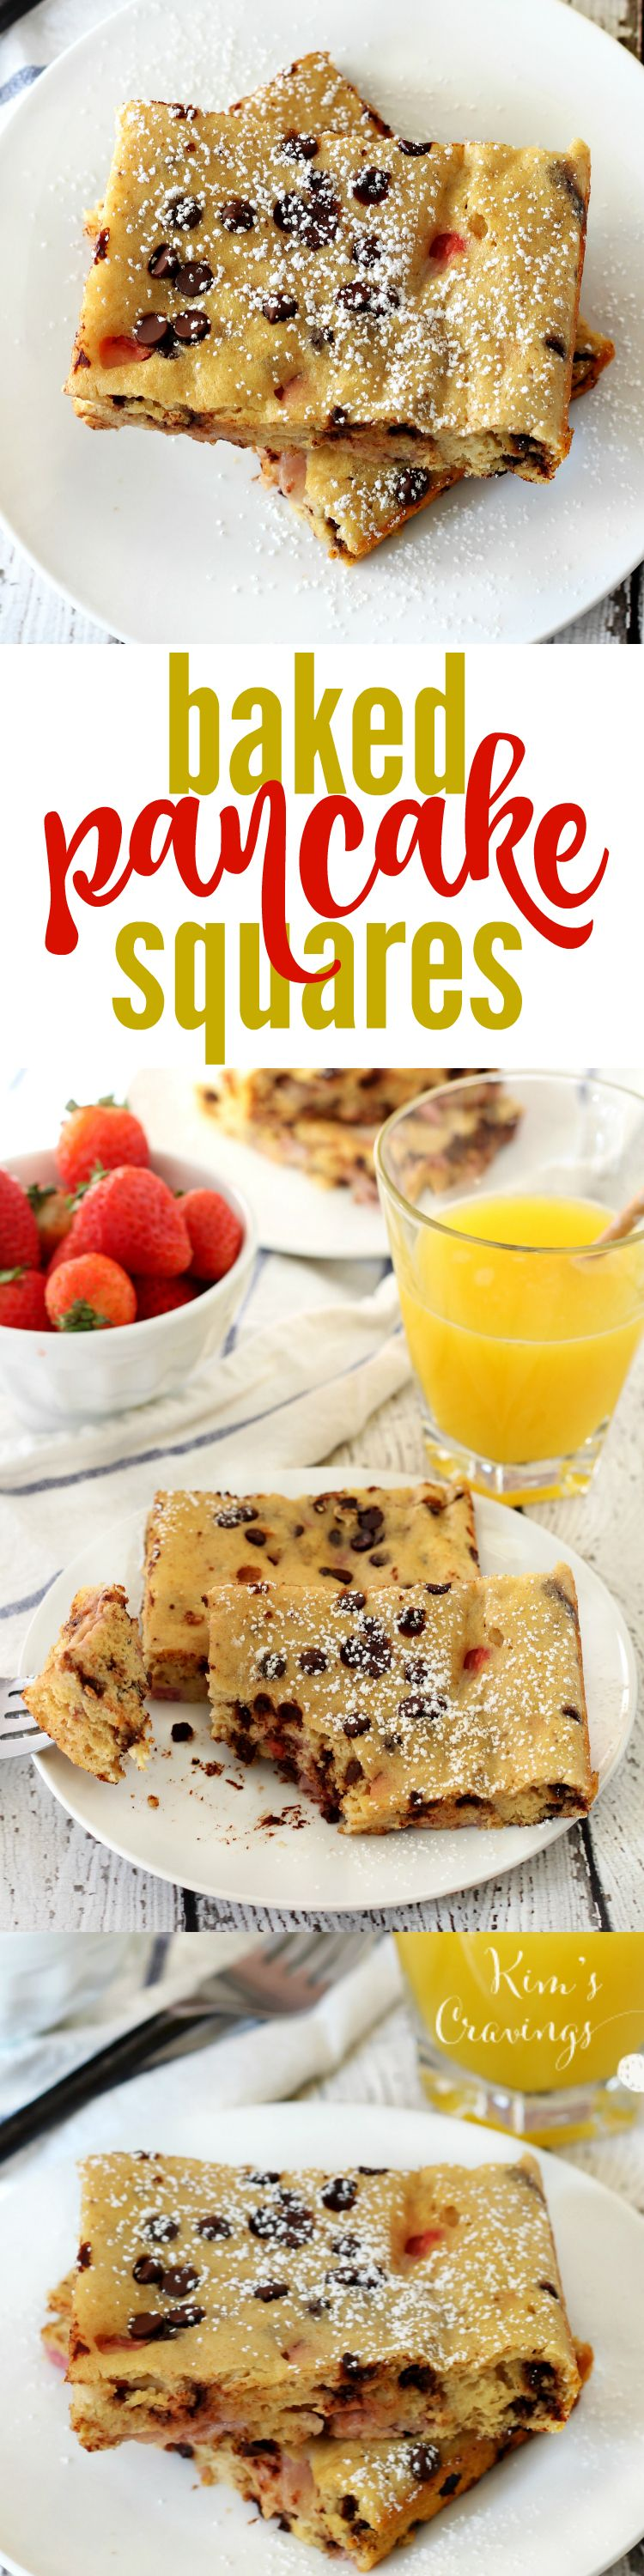 It's the pancake recipe for those of us that have no patience for flipping- Baked Strawberry Chocolate Chip Pancake Squares are super easy to make and your kiddos will jump up out of bed for this deliciousness.